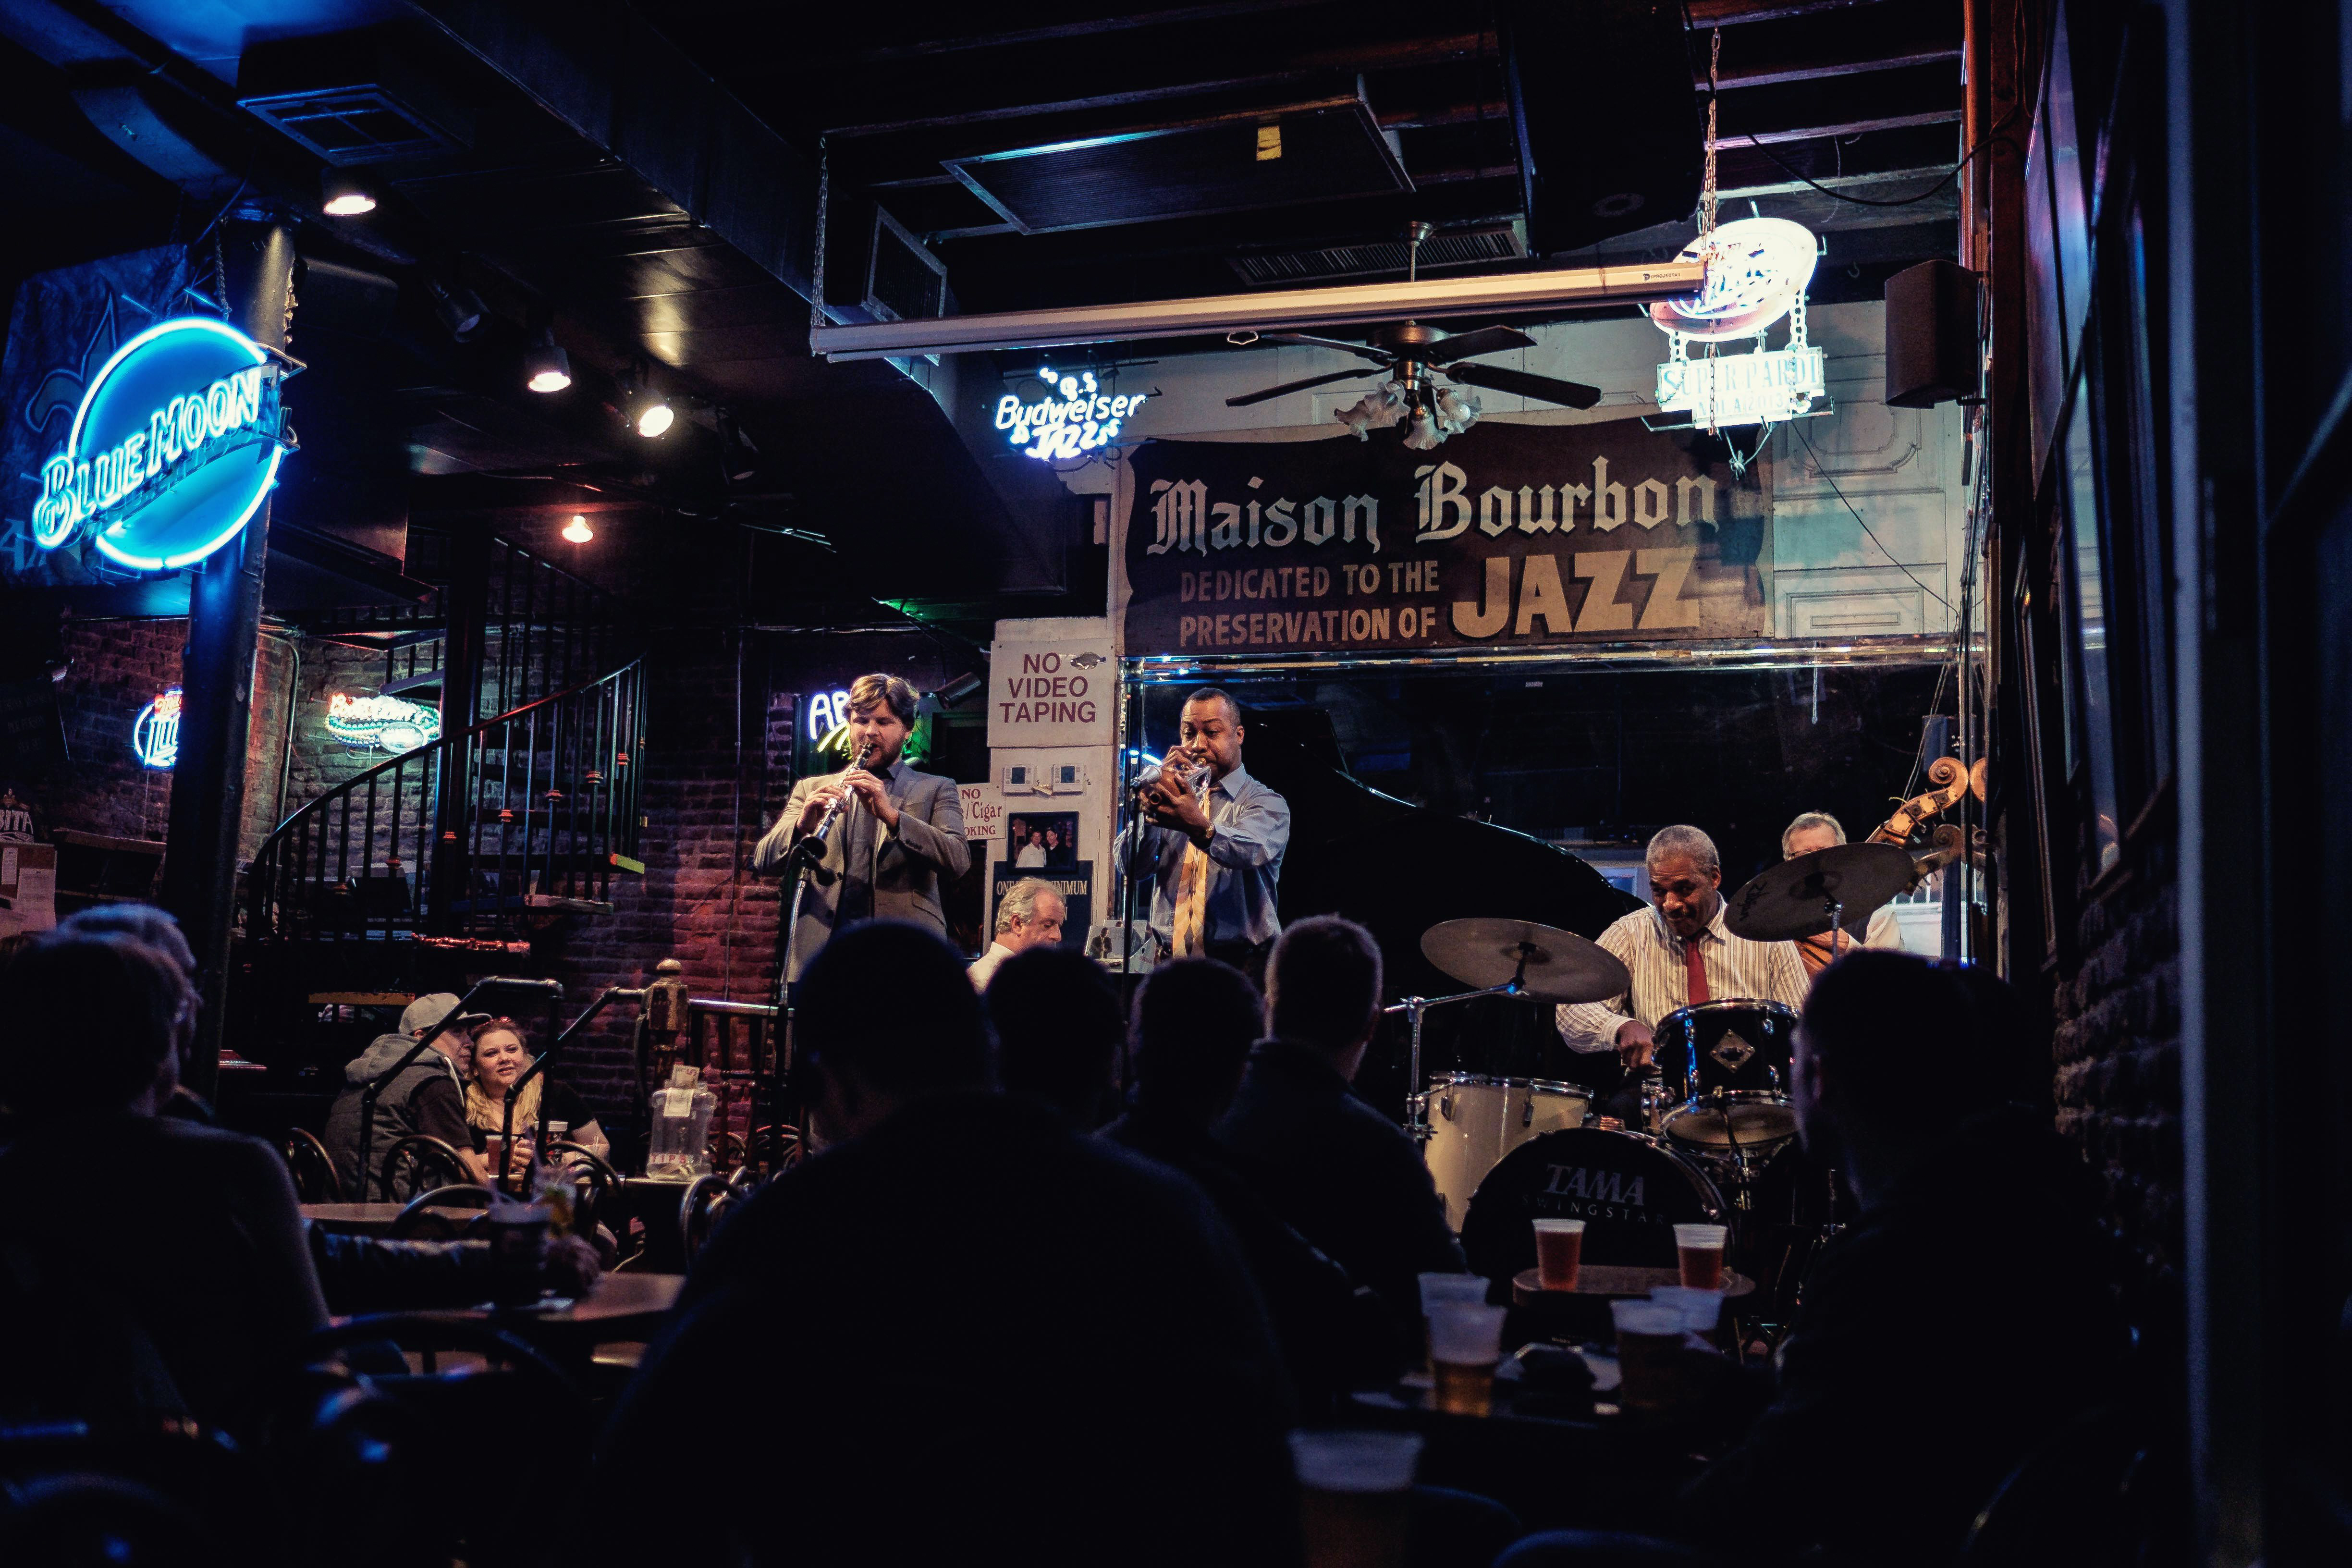 Filemaison bourbon jazz band in new orleans january 2015 jpg